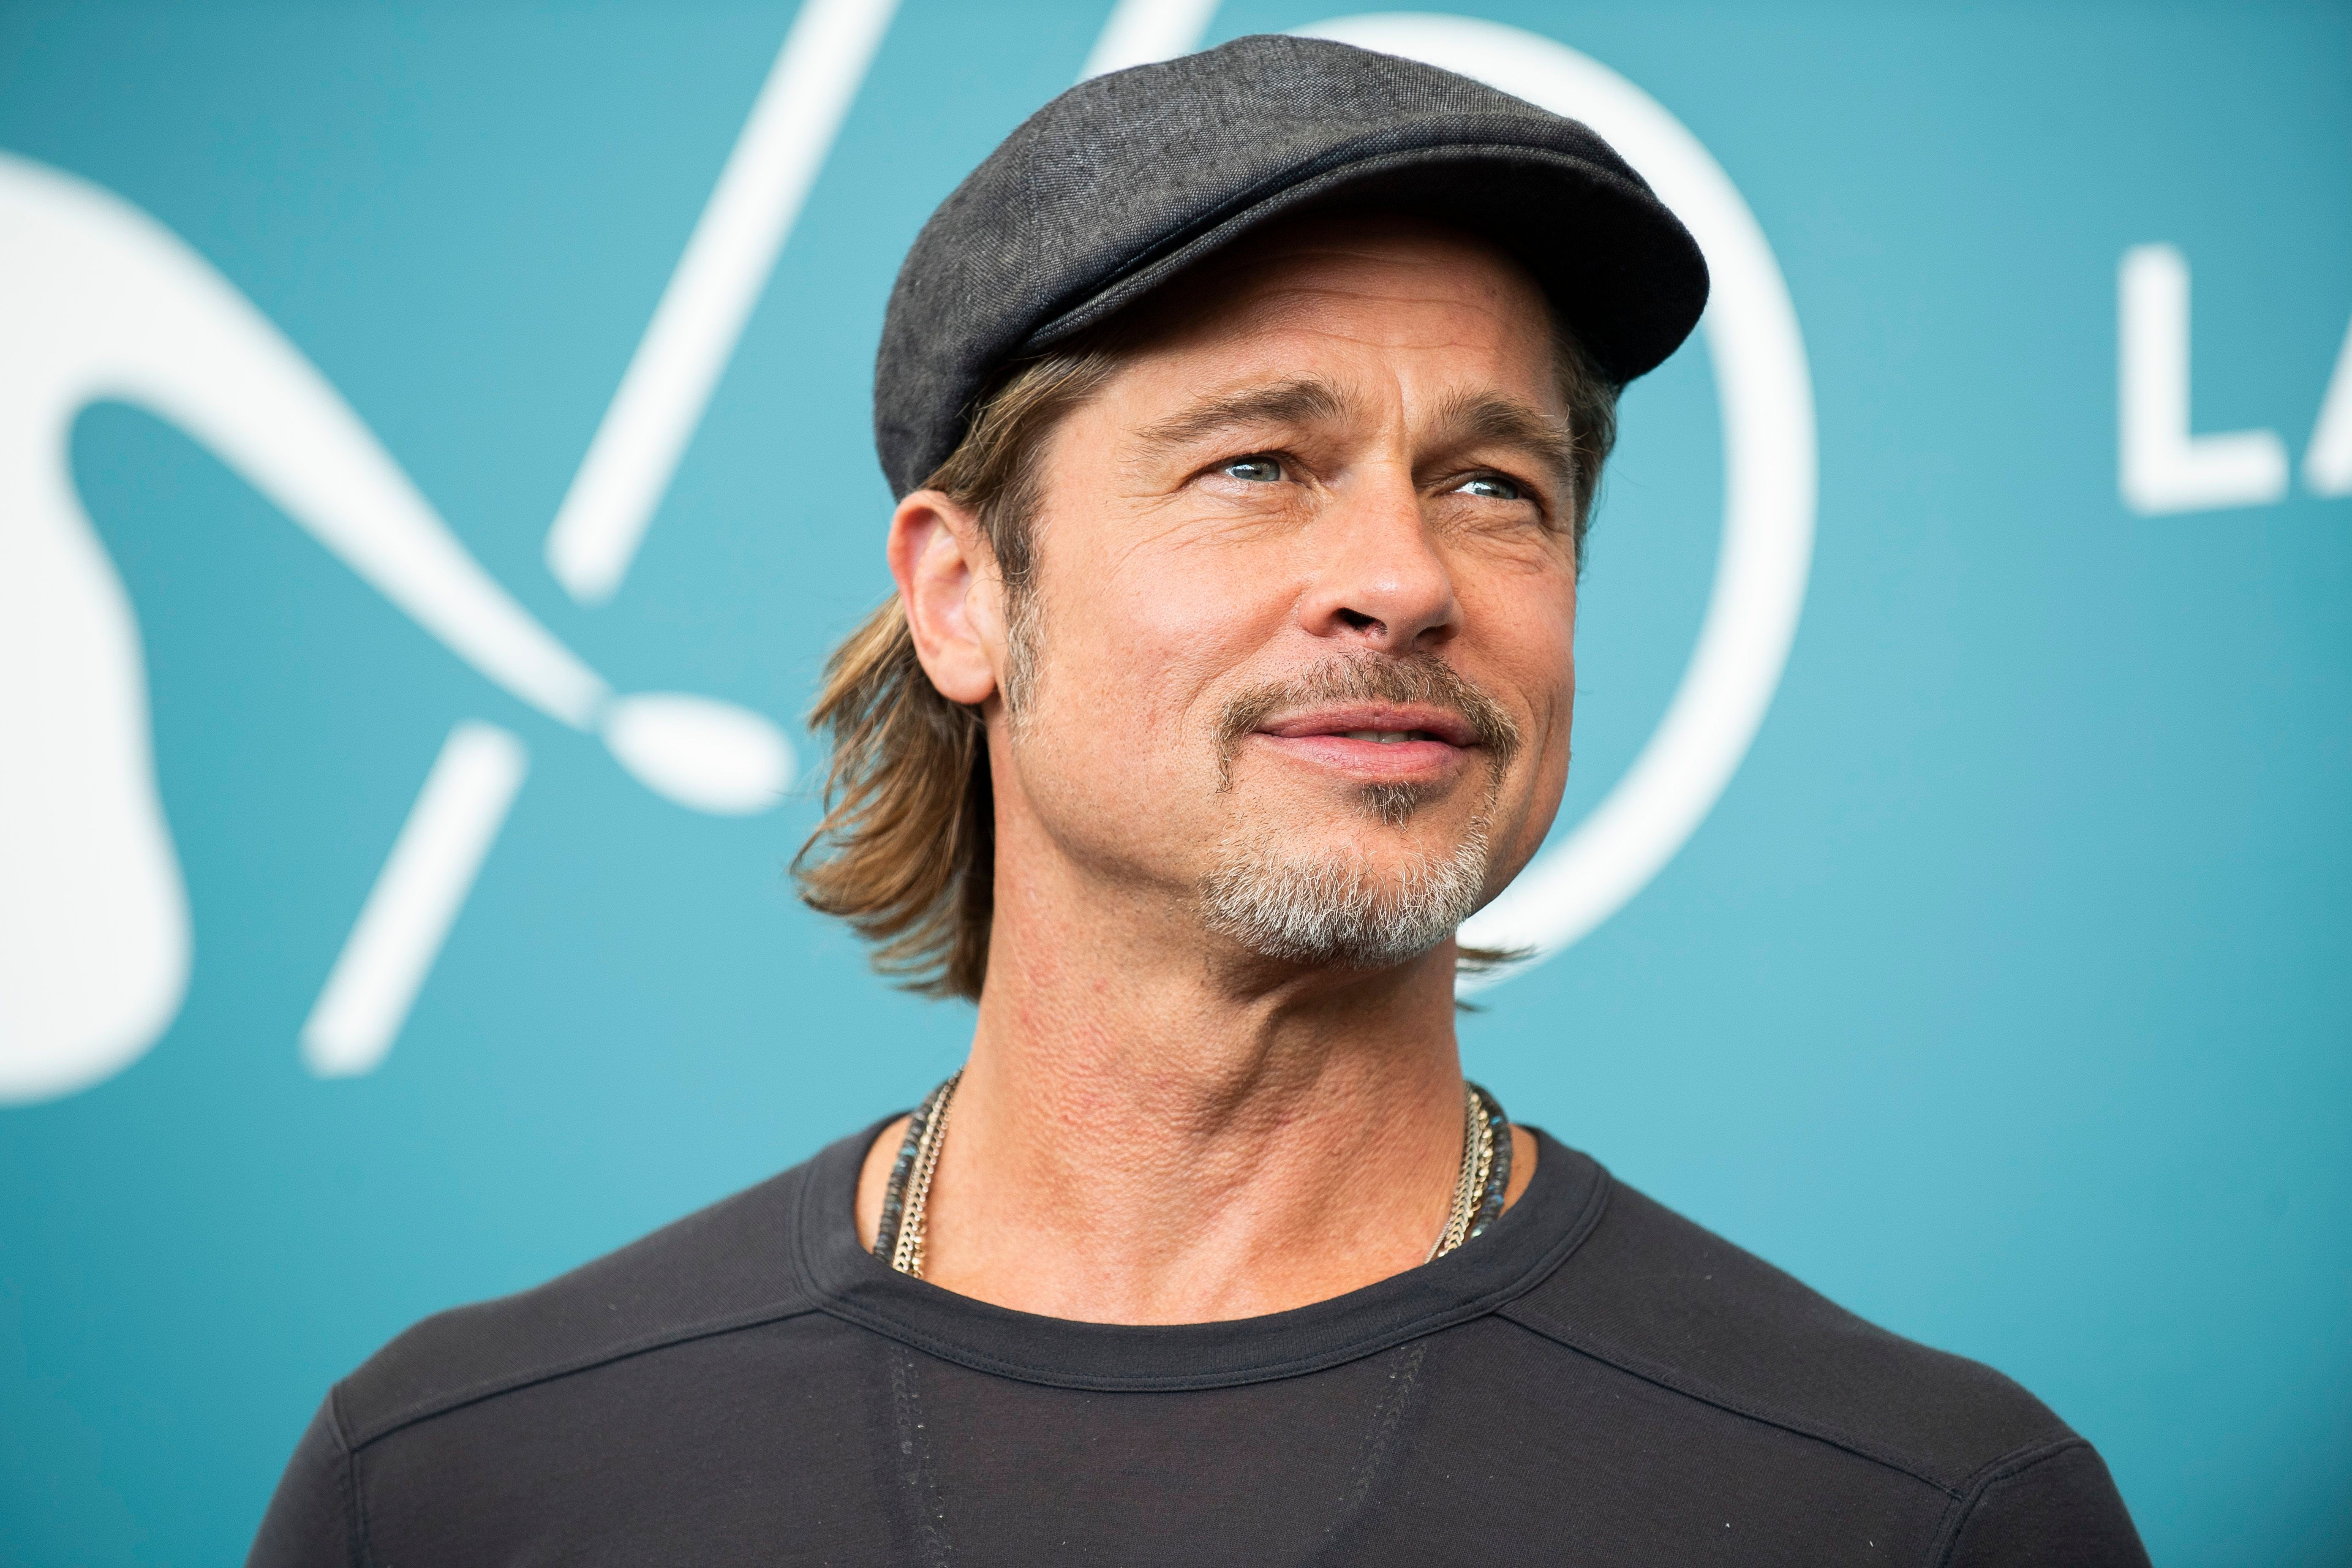 Brad Pitt Vowed to Make Quality Movies After Starring in 'Troy' Drove Him Crazy